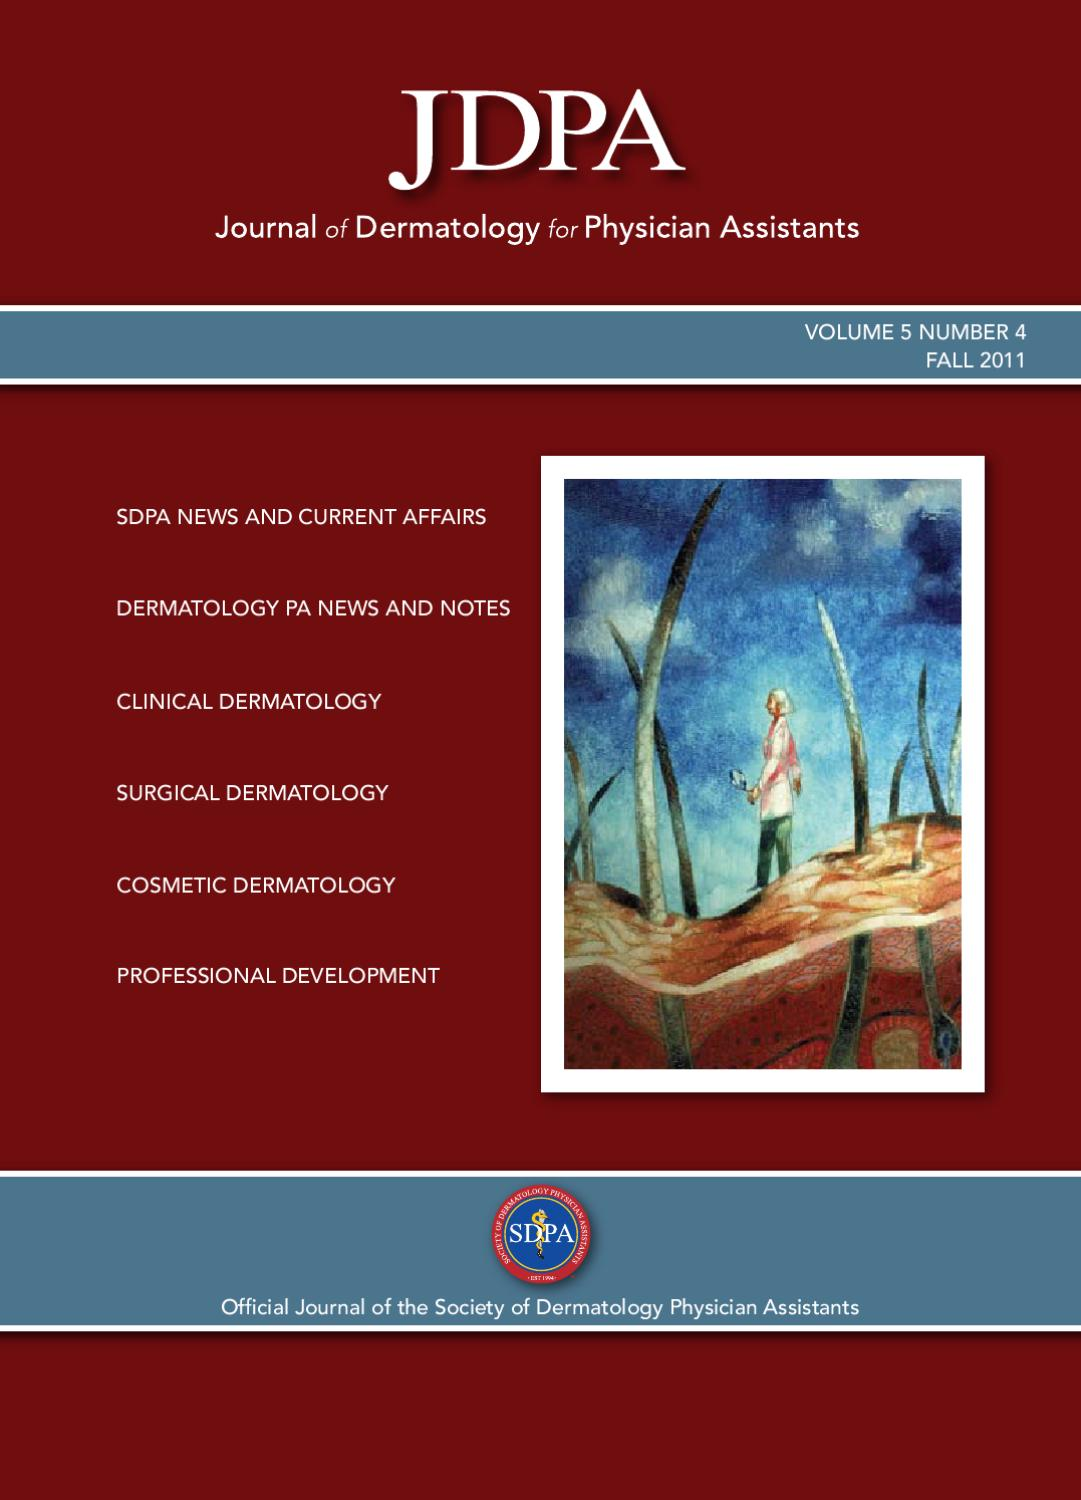 Fall 2011 Journal of Dermatology for Physician Assistants